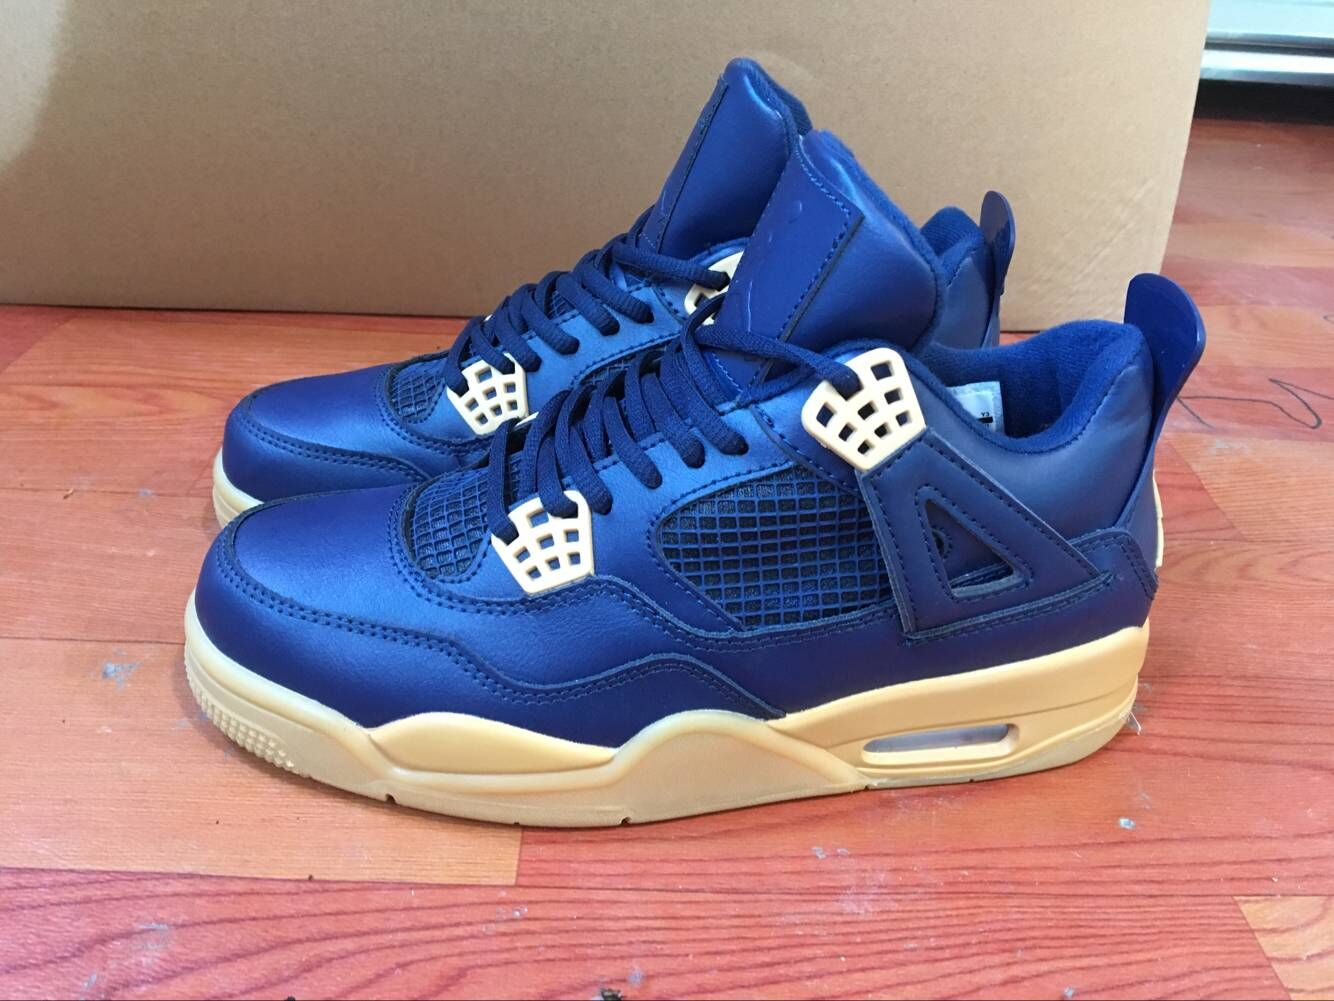 2019 Air Jordan 4 Retro Blue Beign Sole Shoes